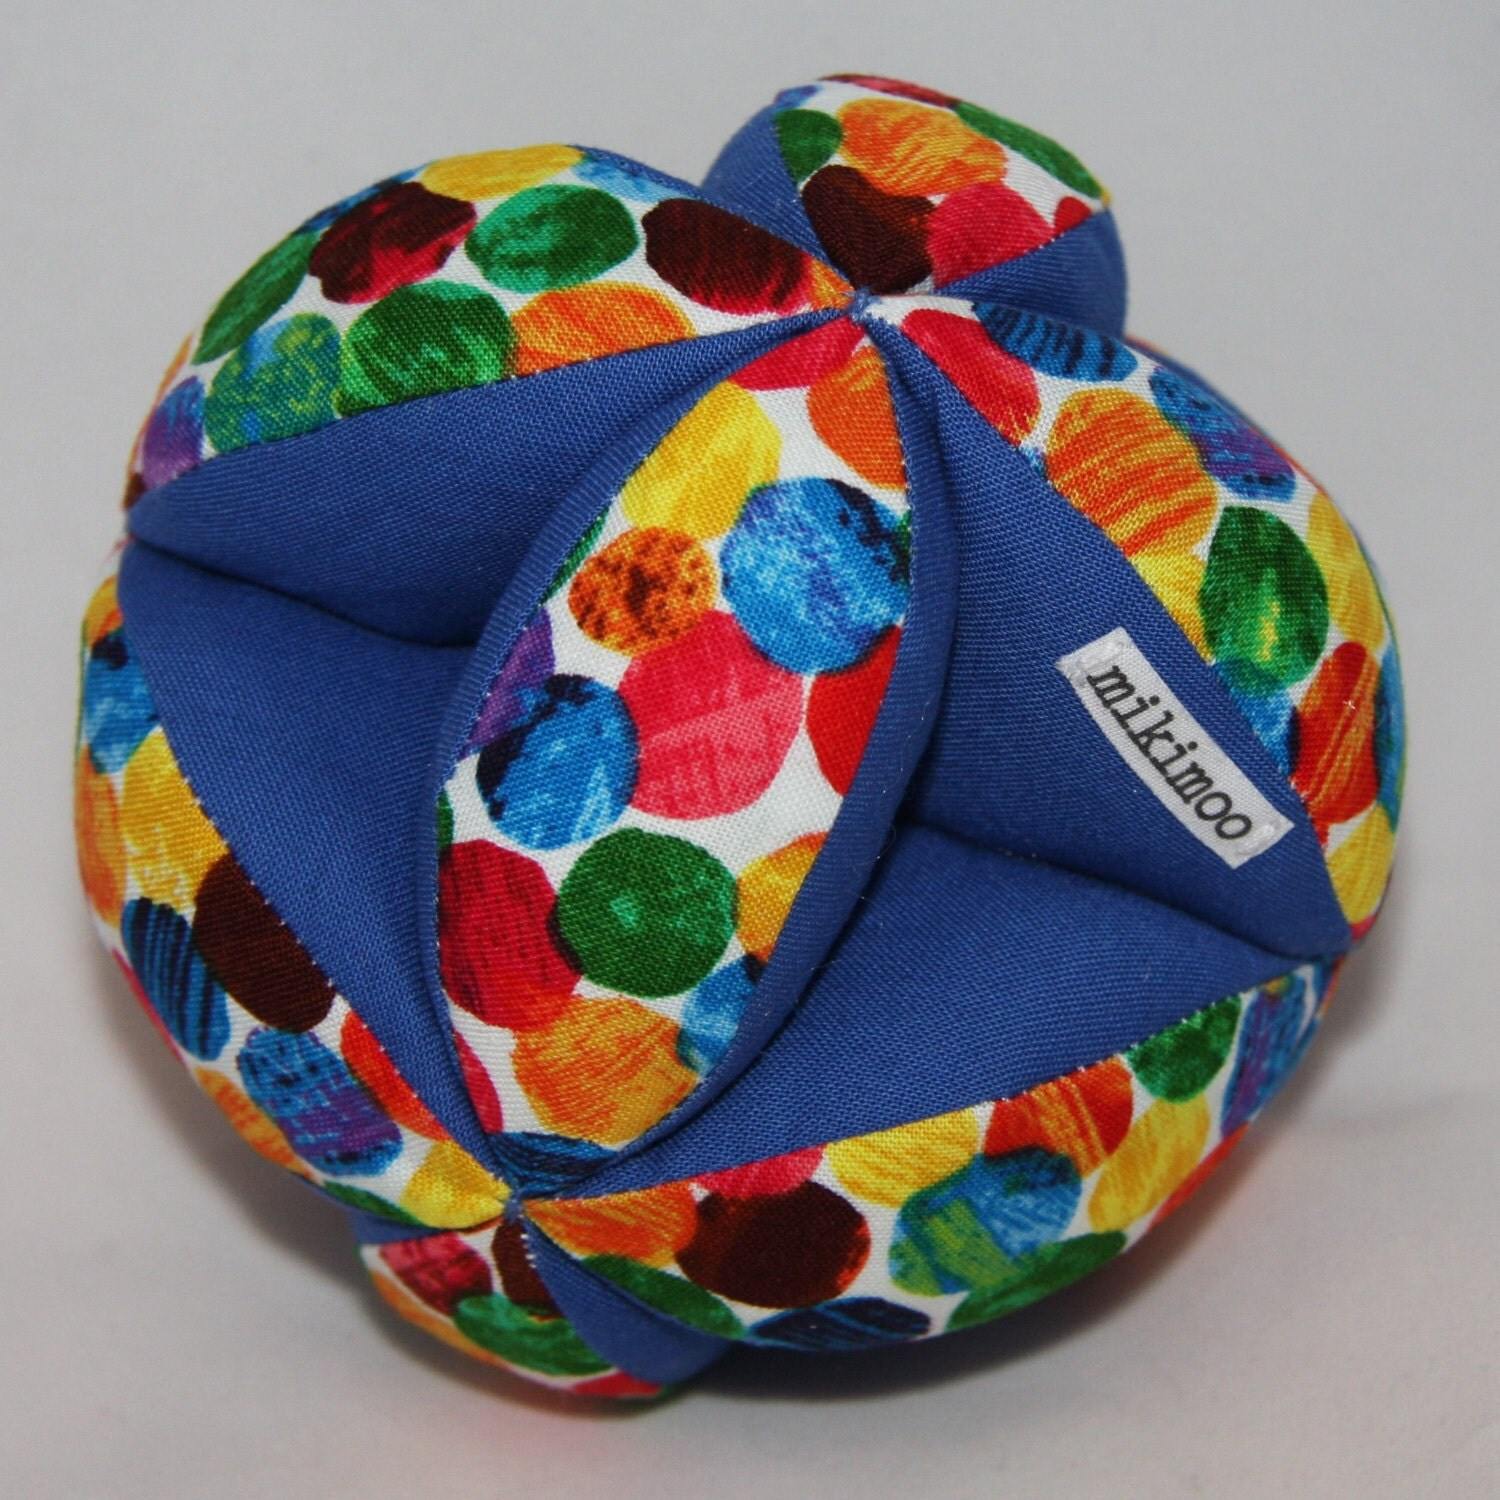 Baby Grab Ball soft puzzle Amish ball perfect unique baby